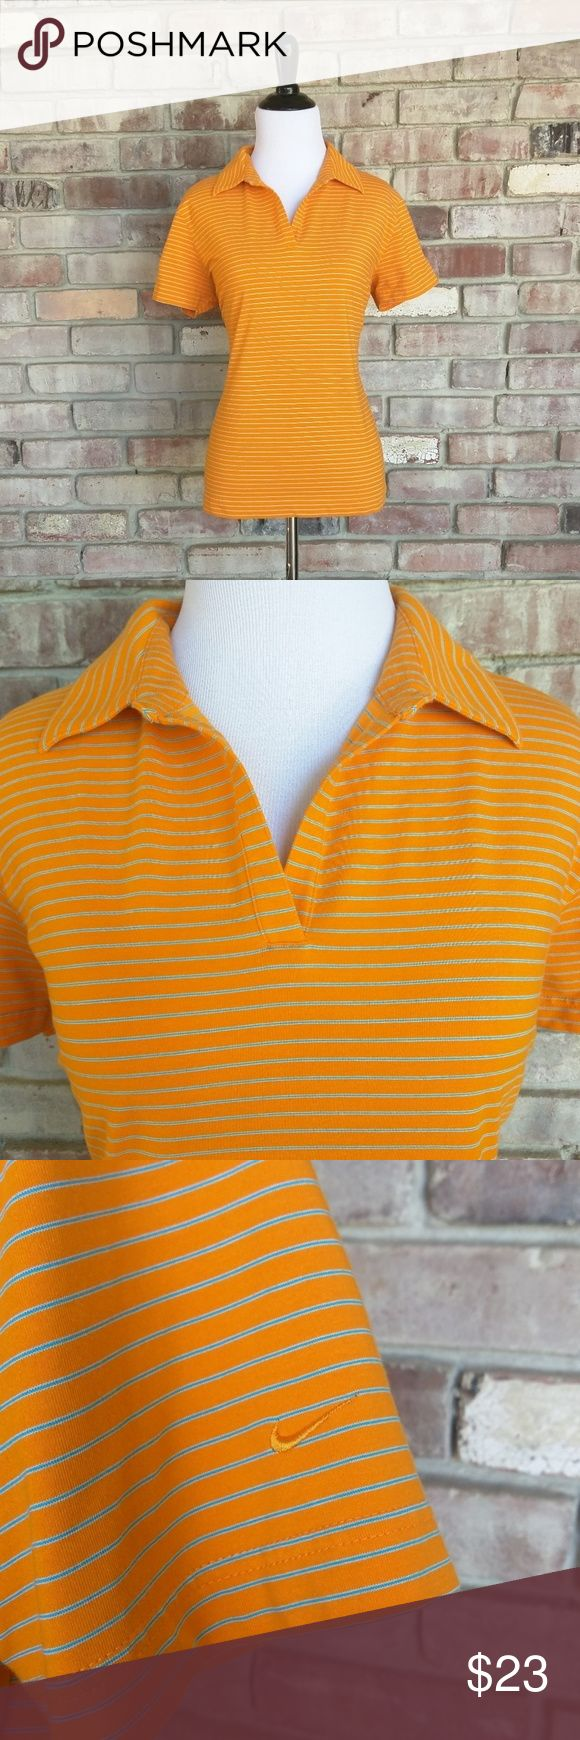 """Nike Golf Polo Classy women's golf shirt by Nike in excellent condition. Worn once or twice!  Measurements taken with garment laying flat: Length- 24"""" Armpit to armpit- 20"""" Nike Tops"""